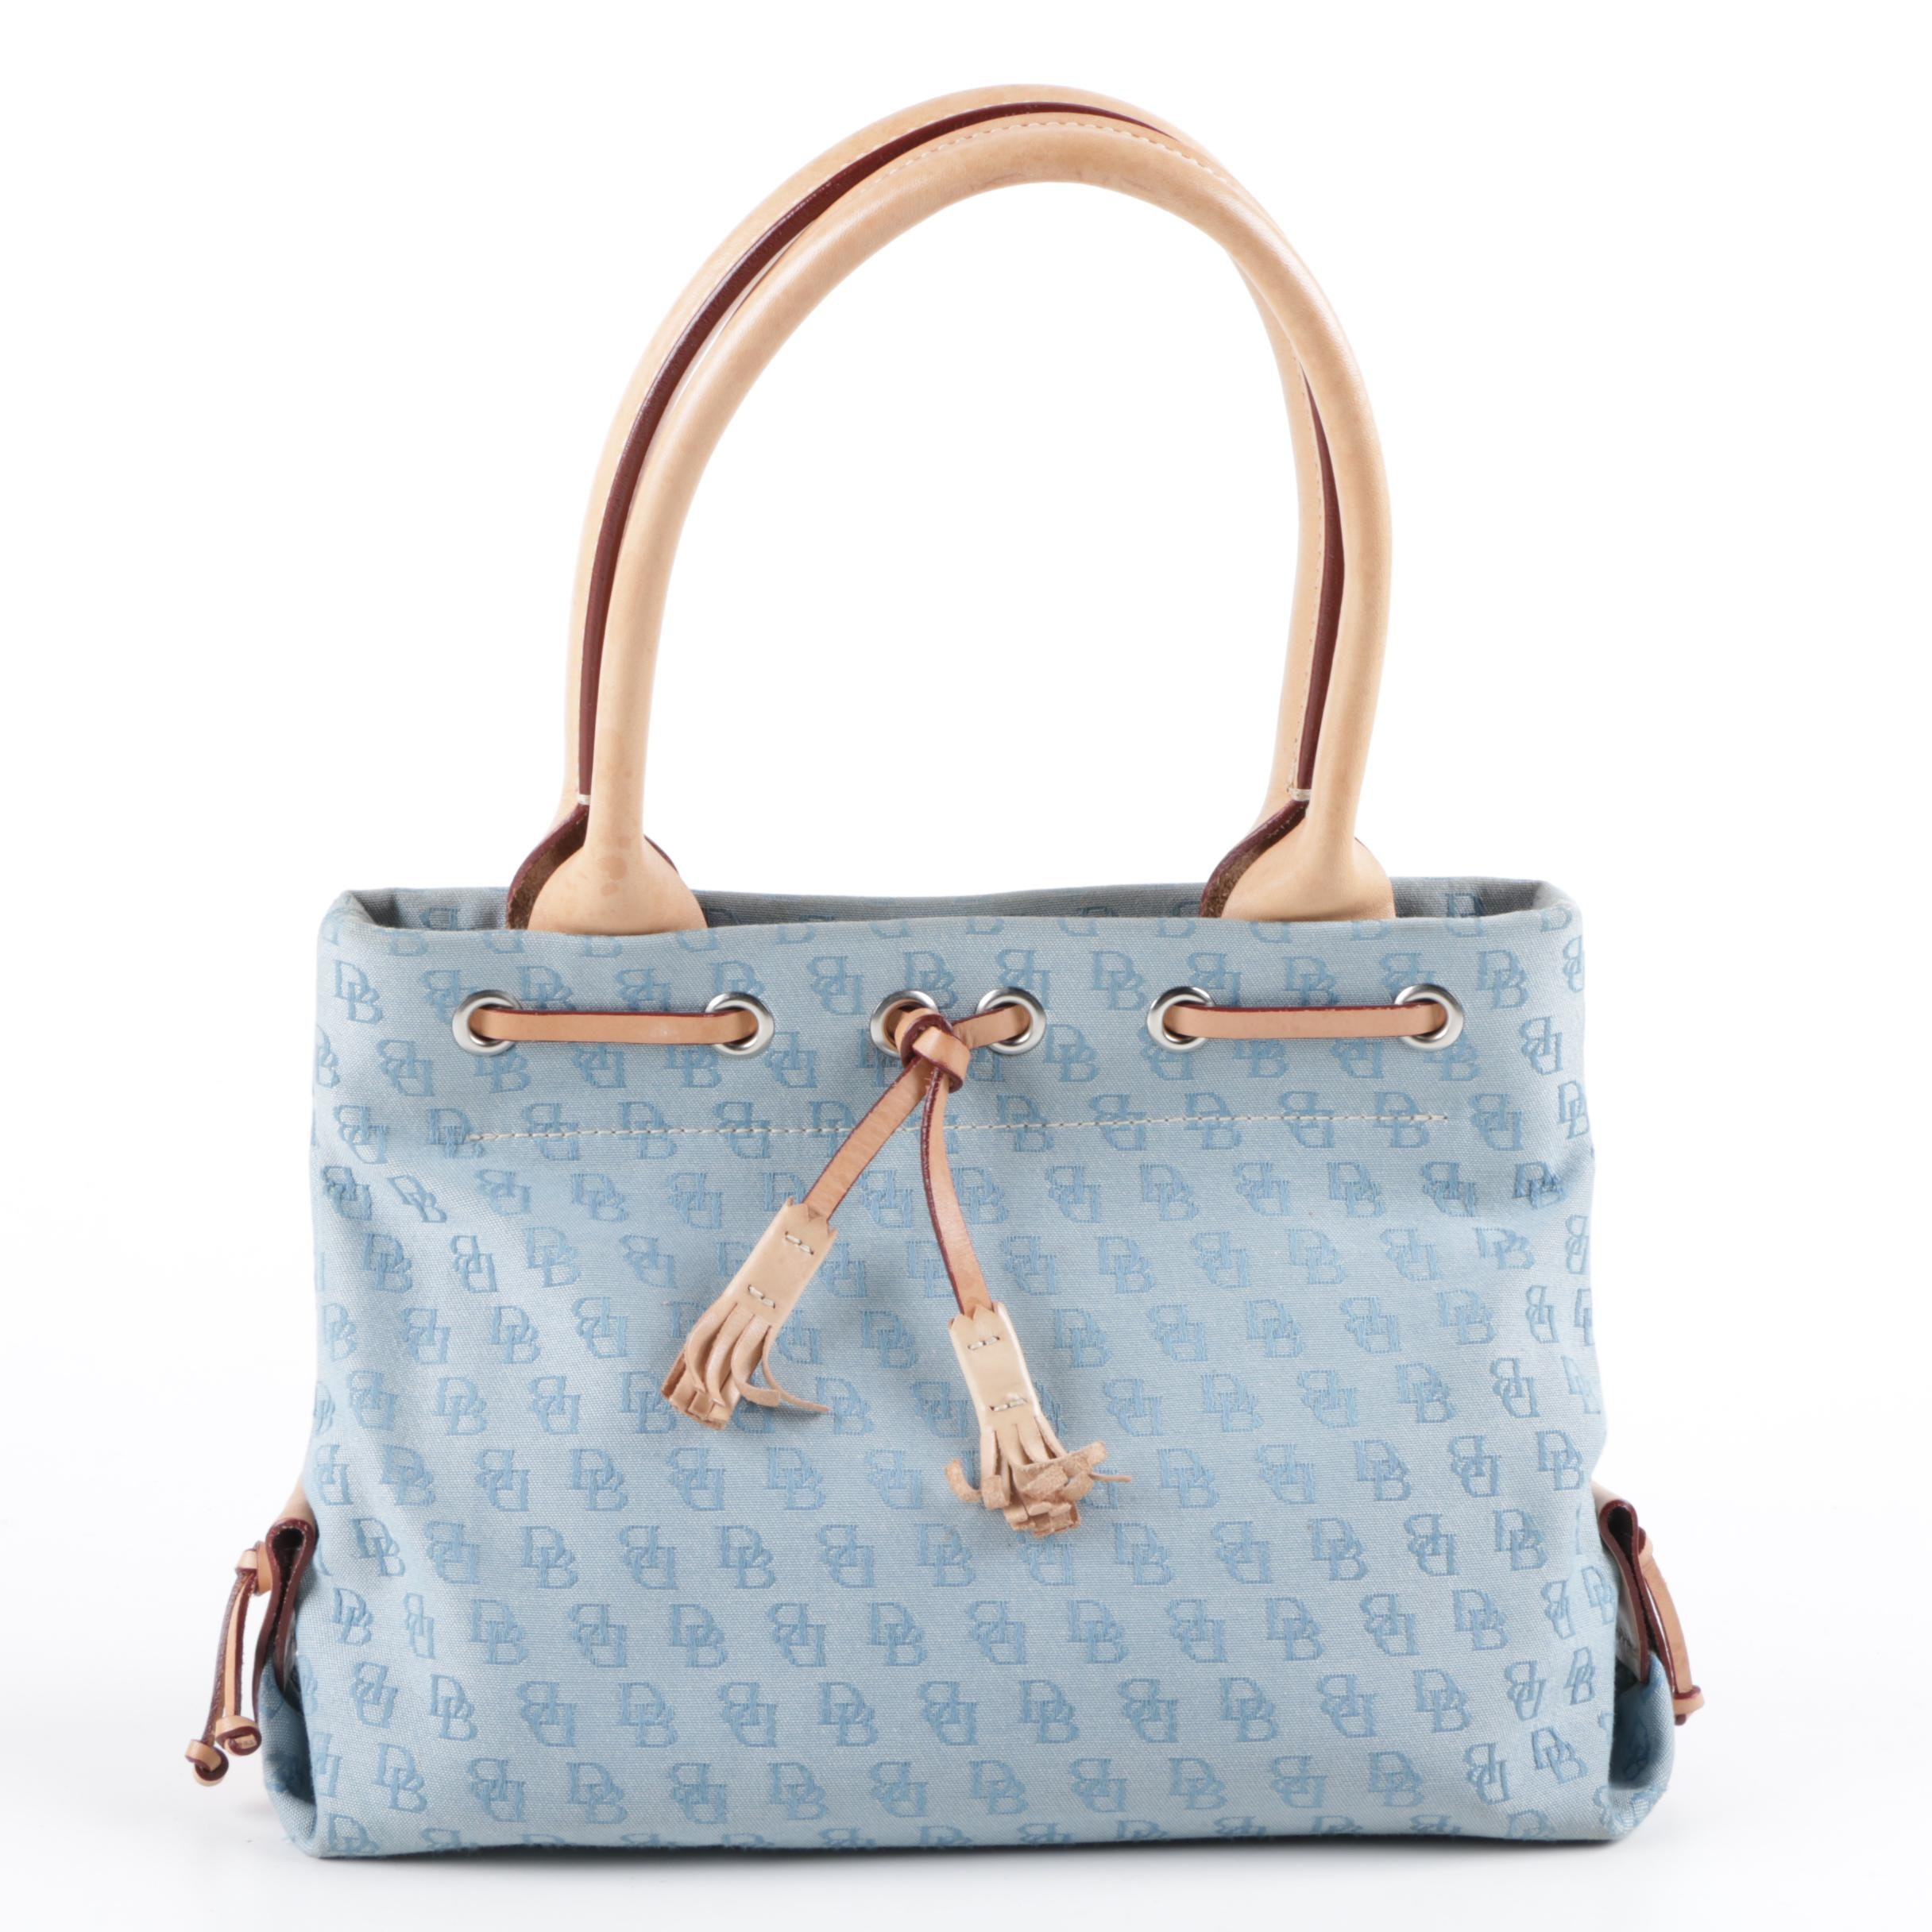 Dooney & Bourke Signature Canvas Tote Bag